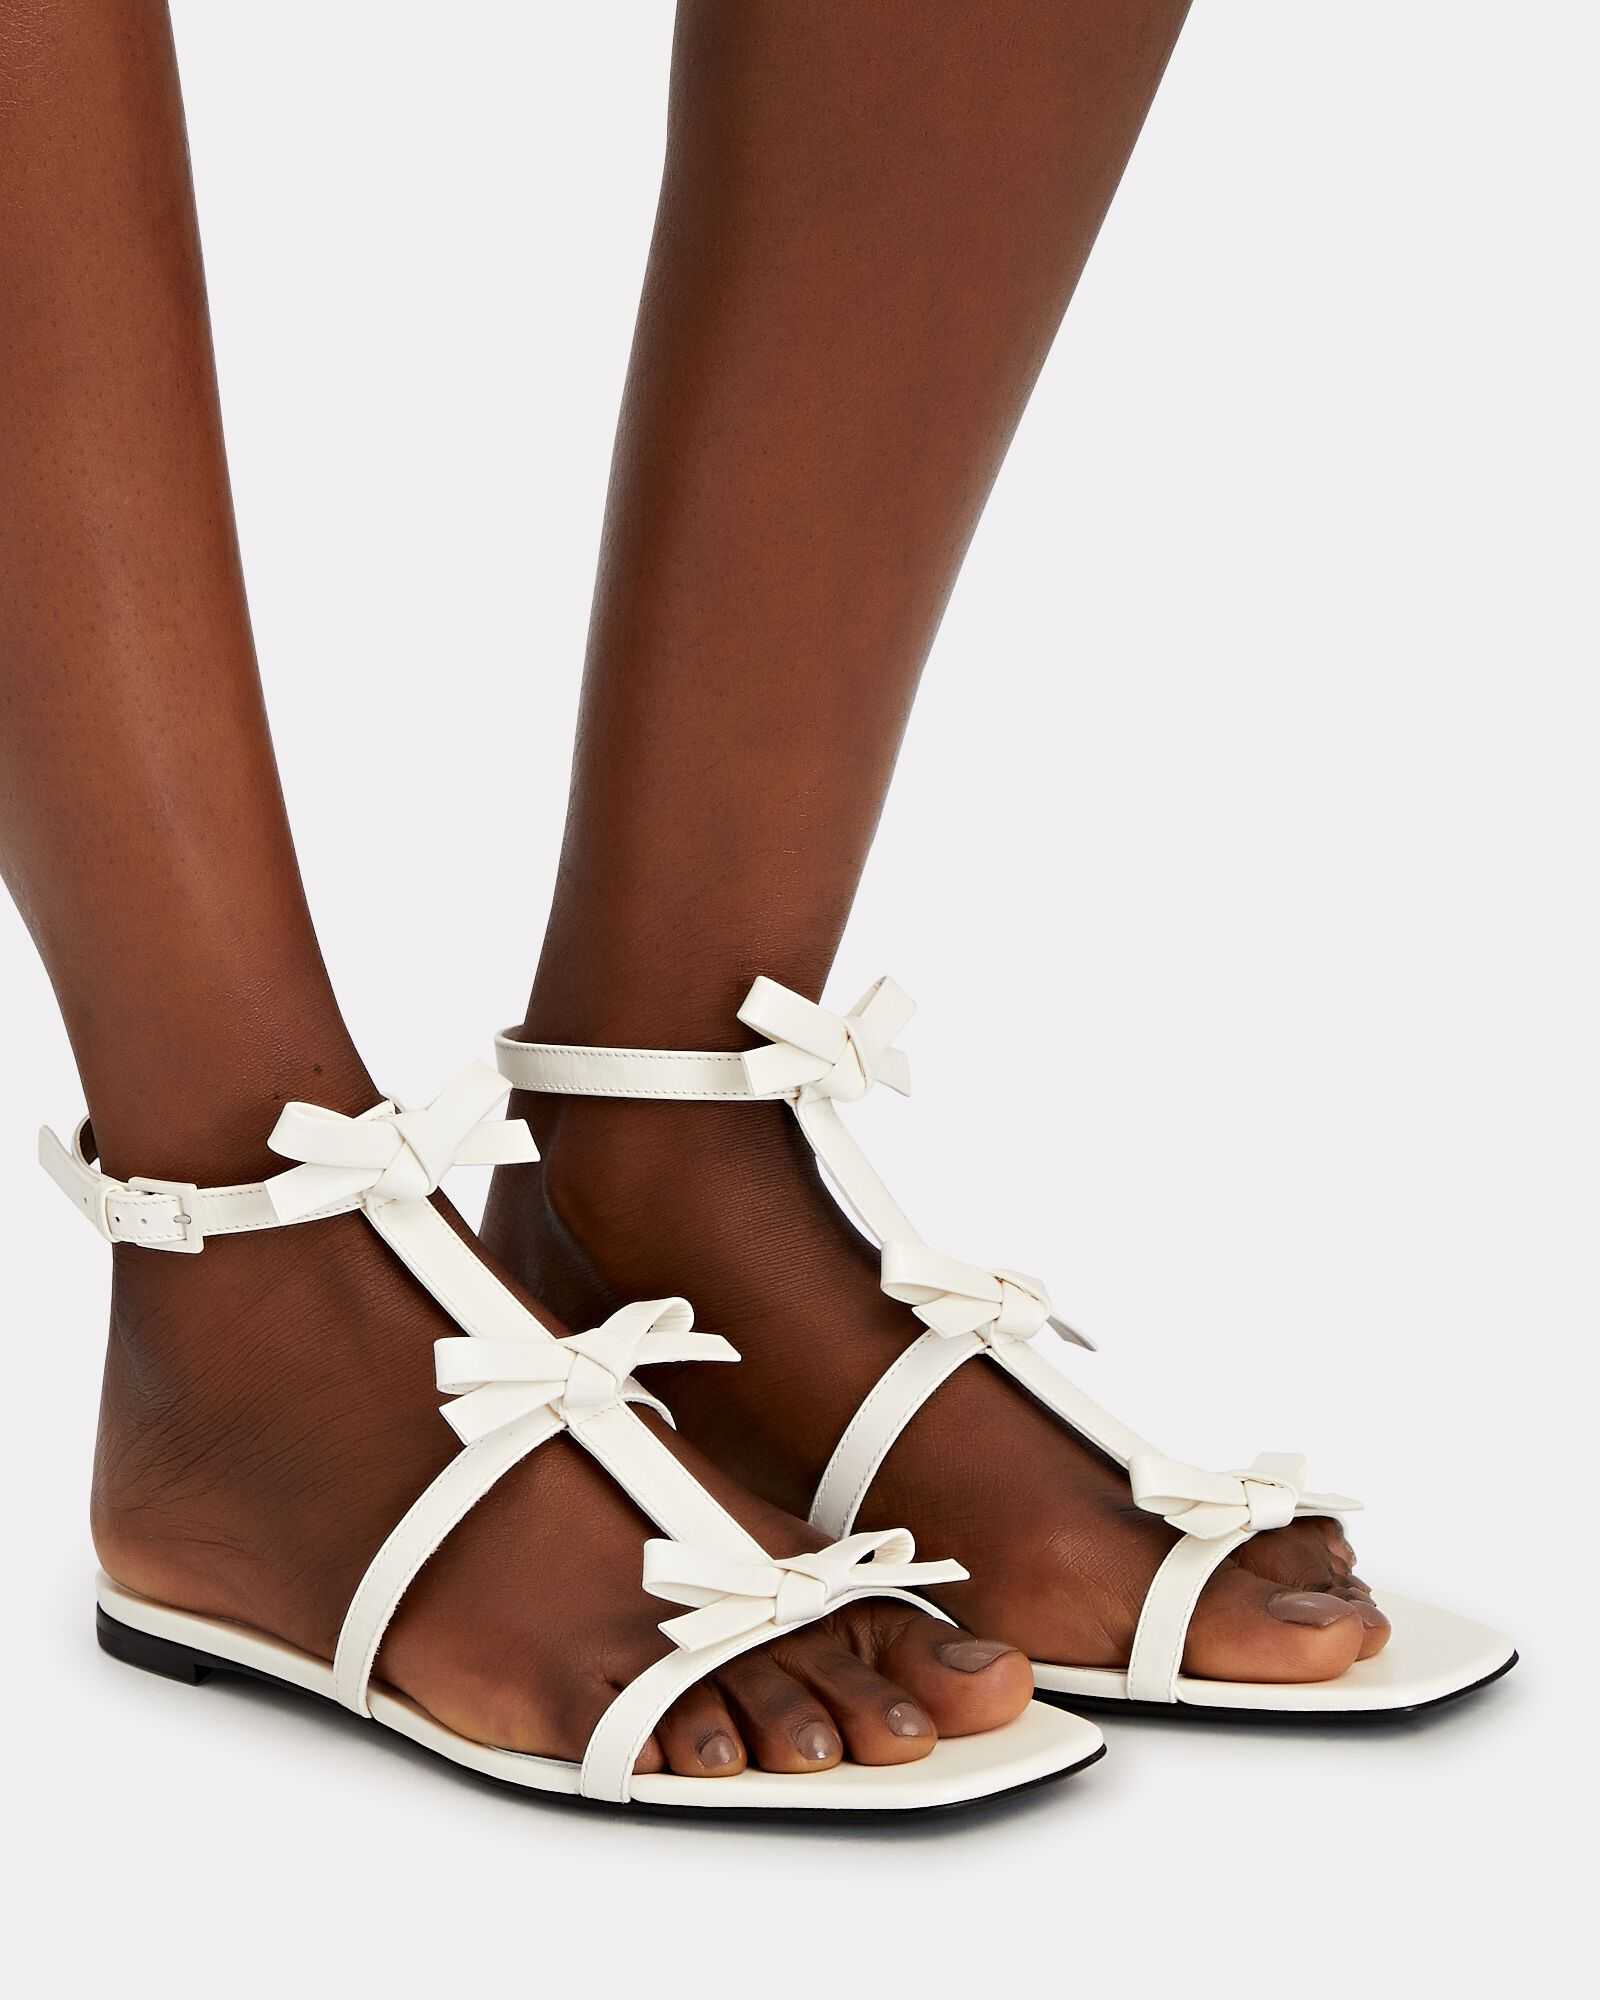 French Bow Leather Flat Sandals, WHITE, hi-res